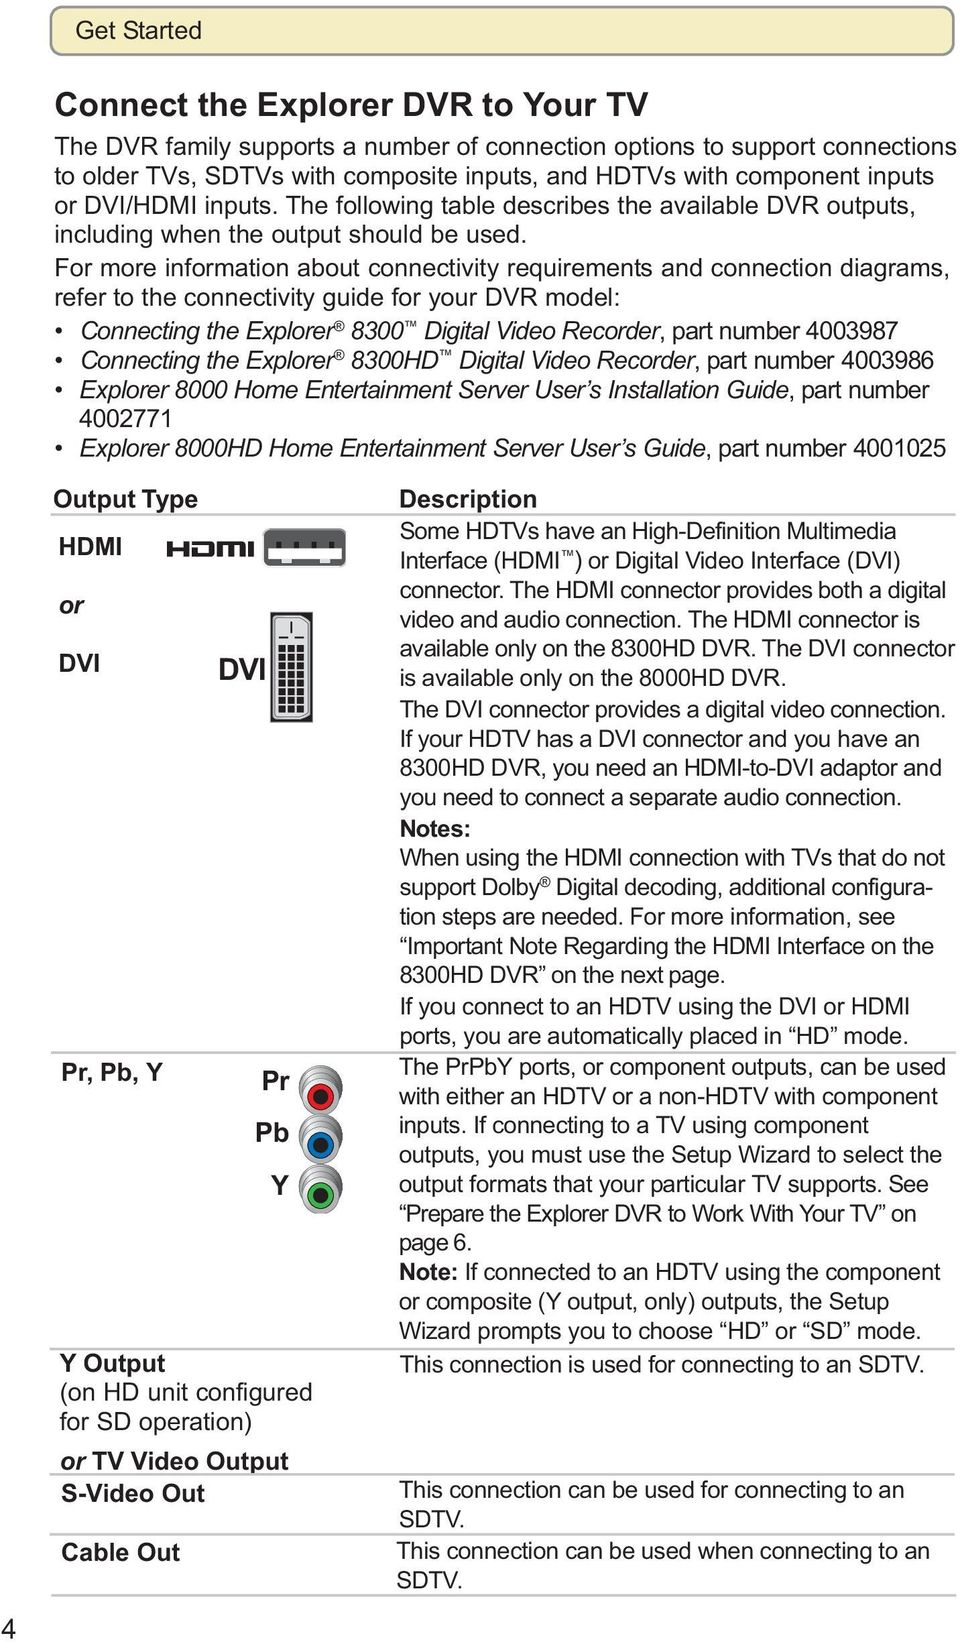 For more information about connectivity requirements and connection diagrams, refer to the connectivity guide for your DVR model: Connecting the Explorer 8300 Digital Video Recorder, part number